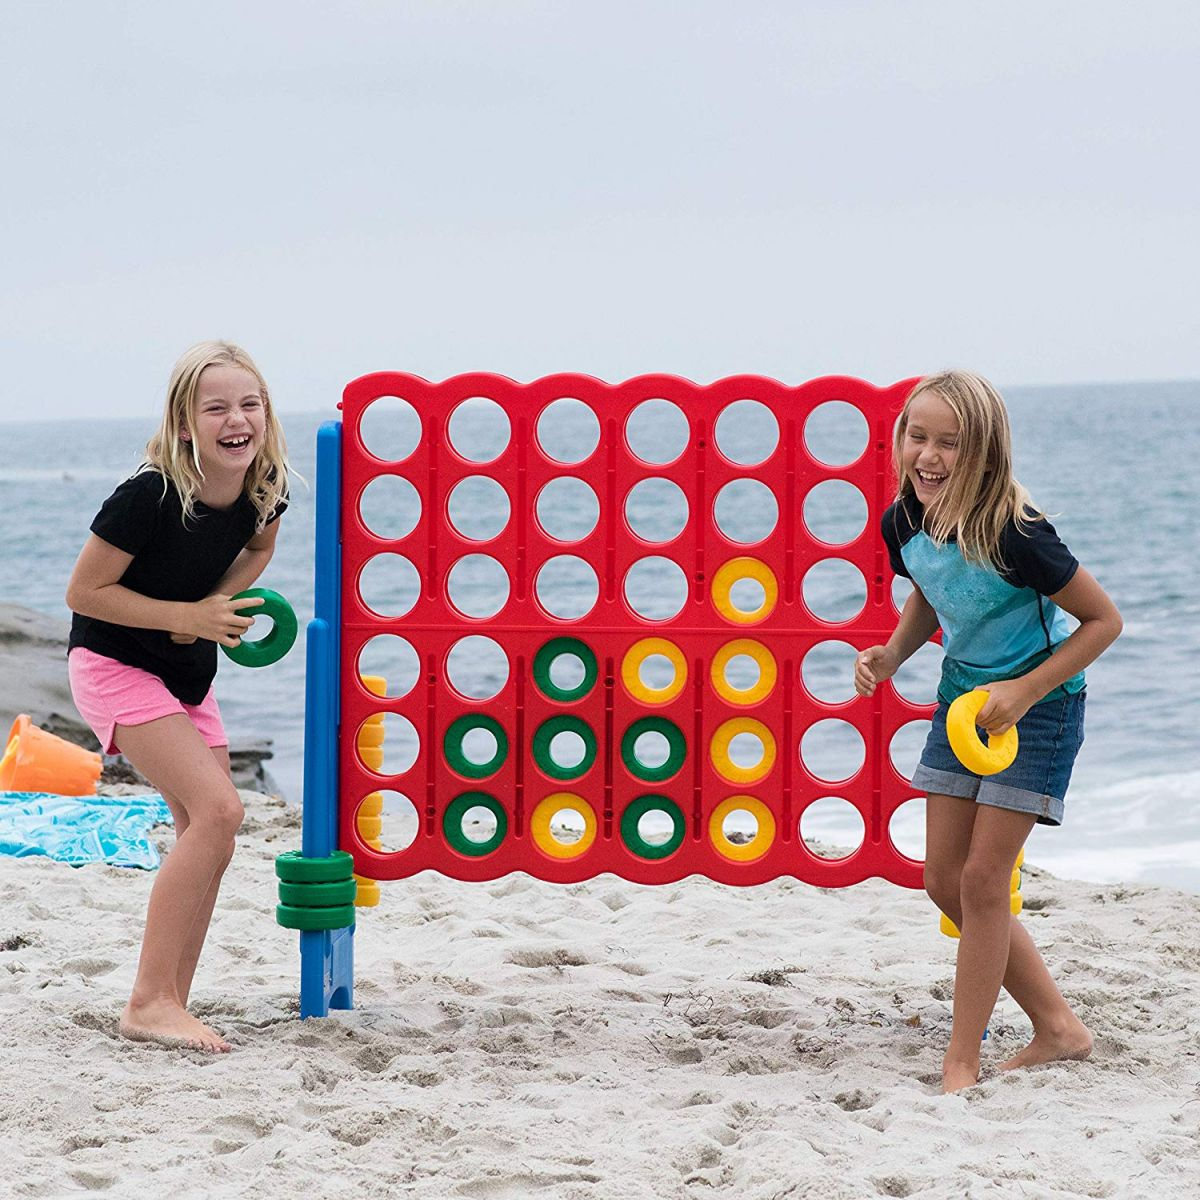 Girls playing giant connect 4 game at the beach